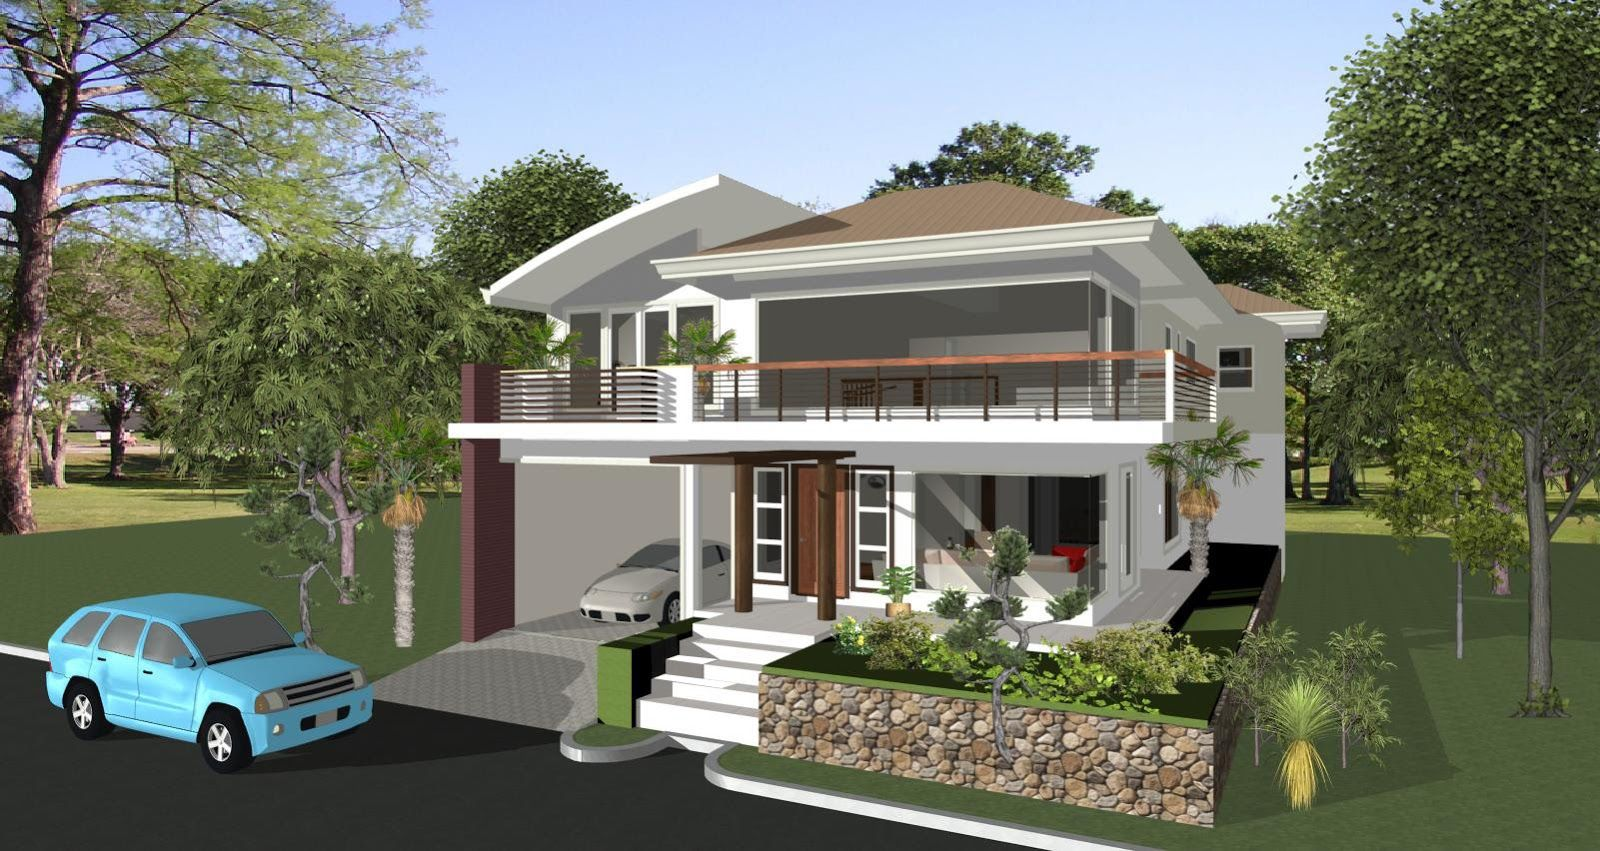 House Designs Iloilo Philippine Home Designs Philippines House Design  Simply Elegant Home Designs Unique Small House